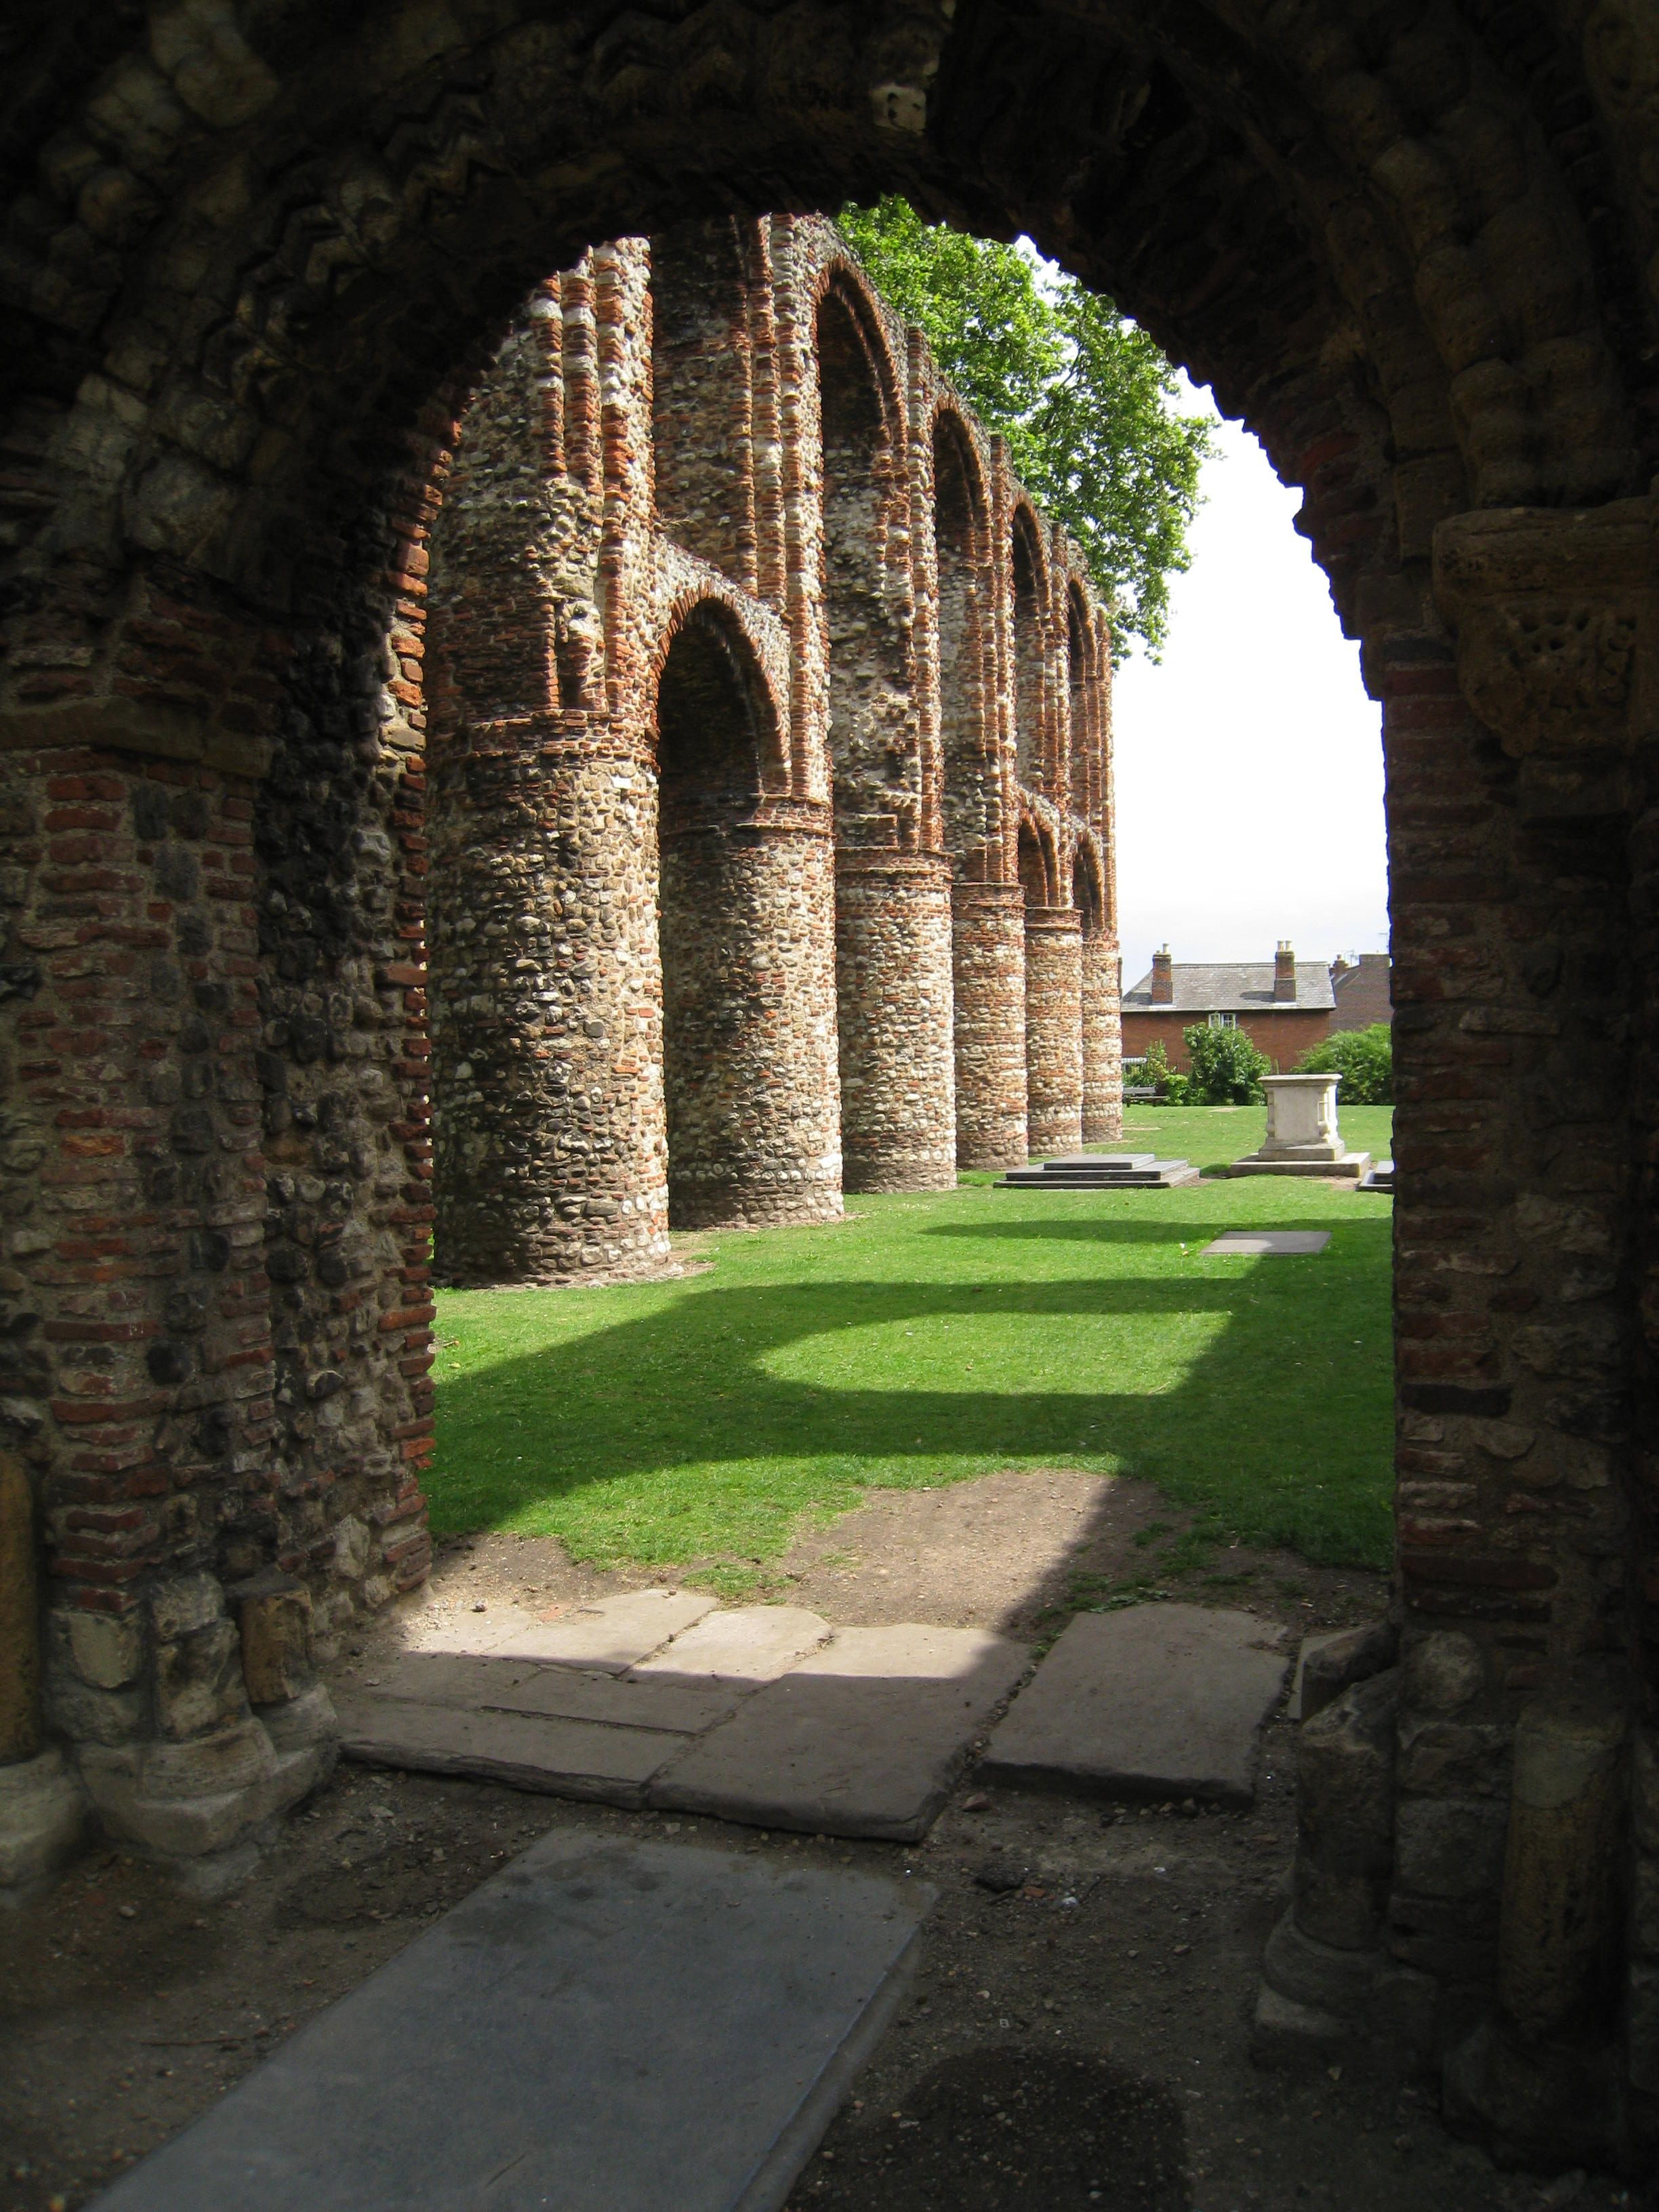 Arches in Colchester, England